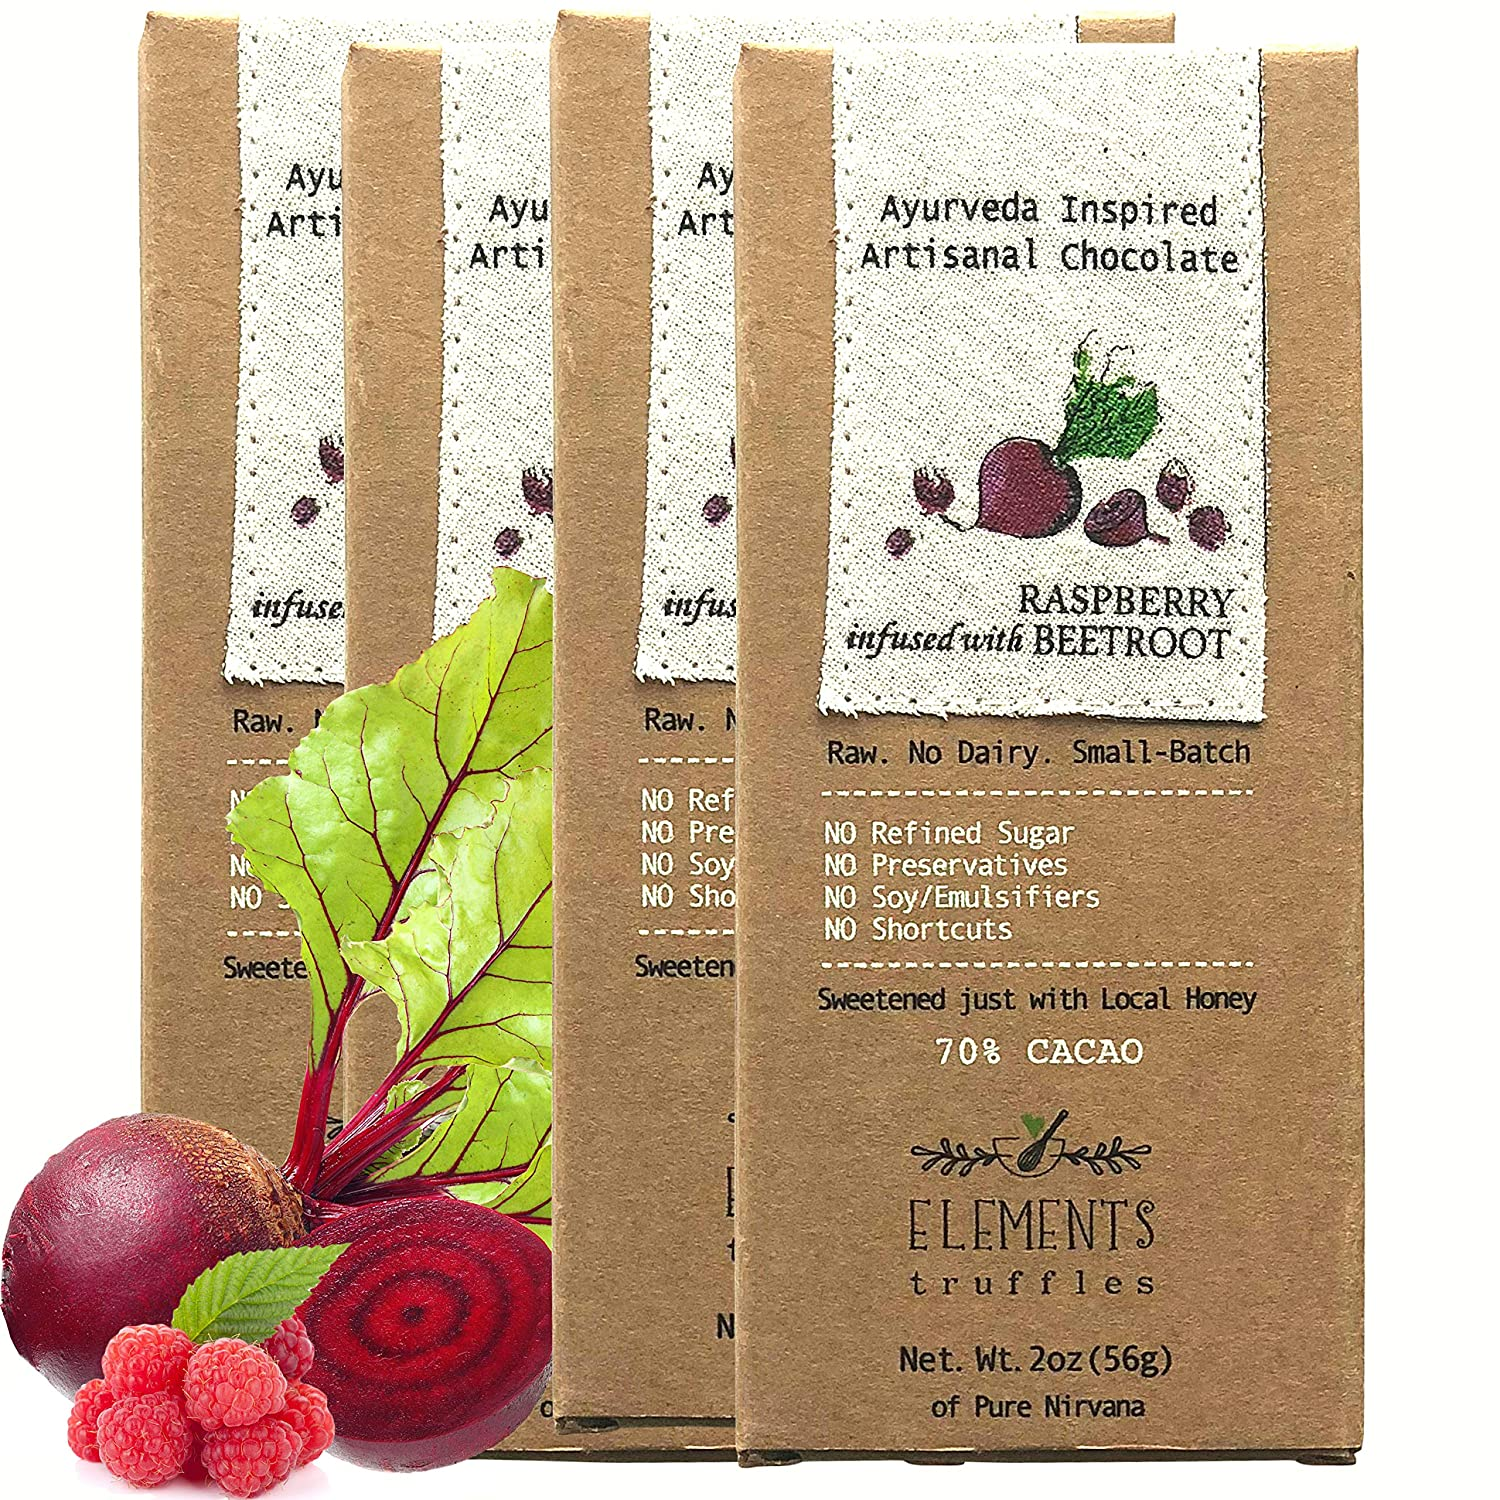 Elements Truffles Raspberry Bar with Beetroot Infusion - Dairy Free Chocolate Bar - Paleo, Gluten Free, Non-GMO, Raw & Organic Chocolate Bar - ...